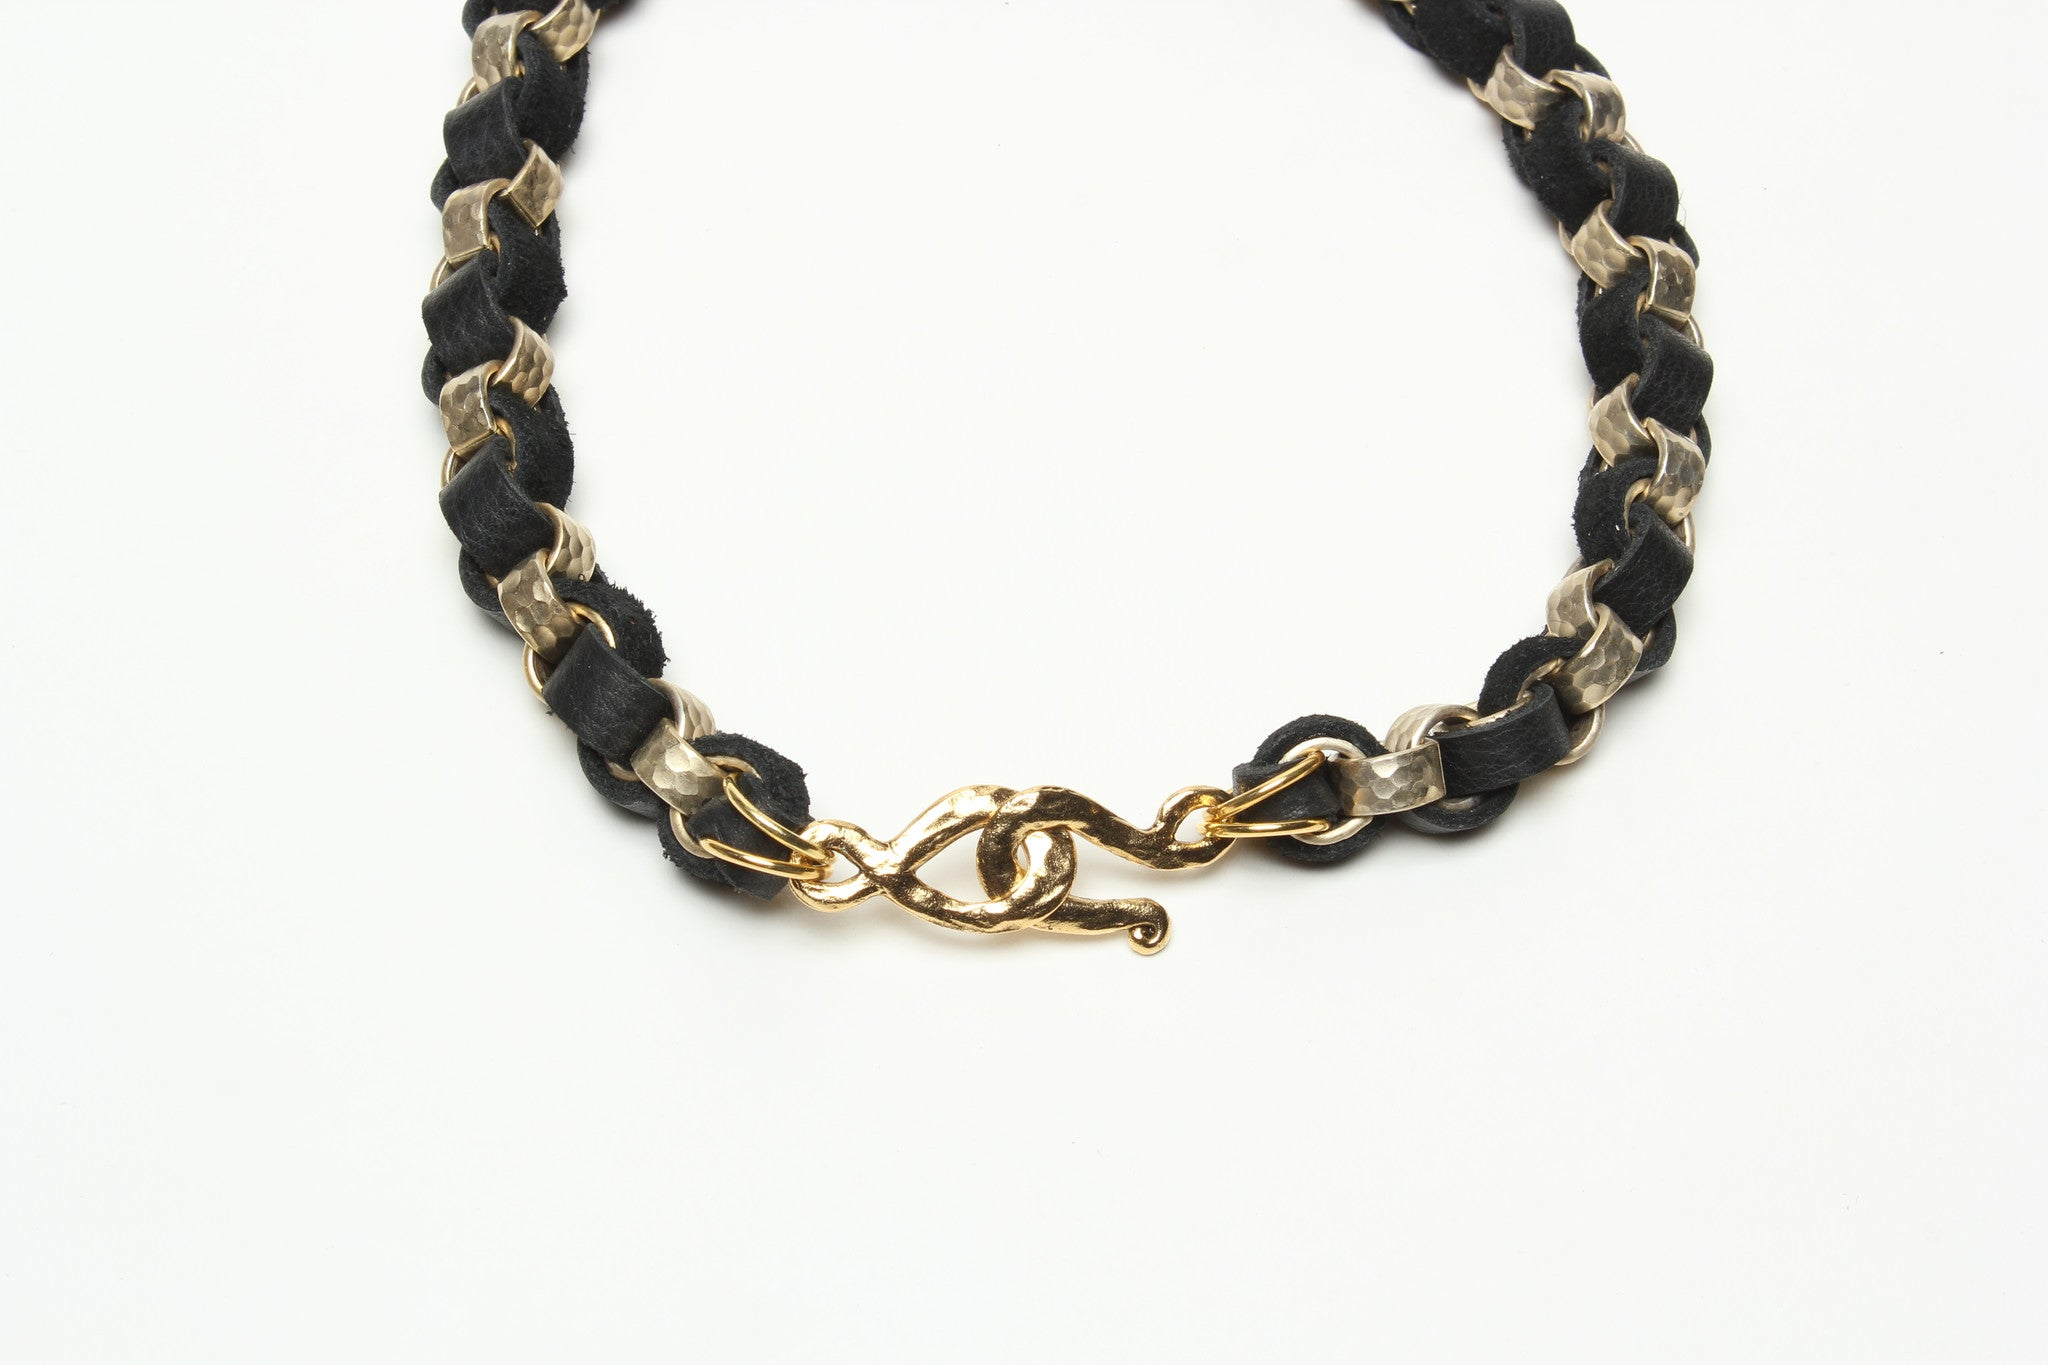 GOLD HAMMERED STEEL CHAIN AND DEERSKIN LEATHER NECKLACE WITH GOLD STIRRUP. by NYET Jewelry.